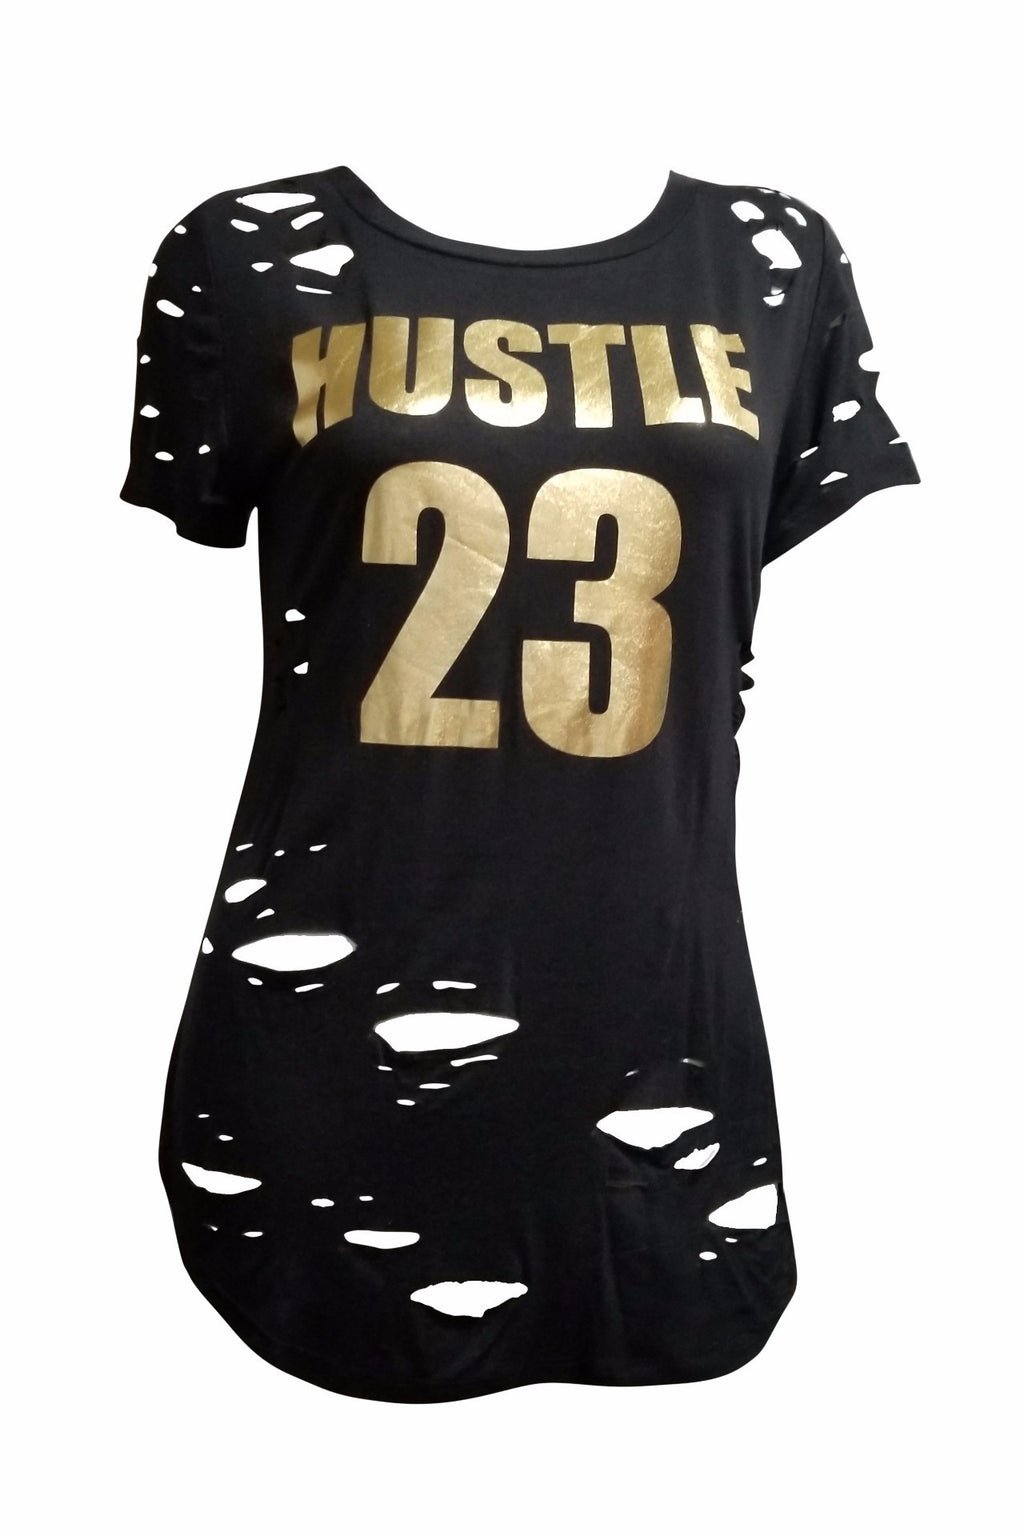 Hustle Distress T-Shirt (Black)